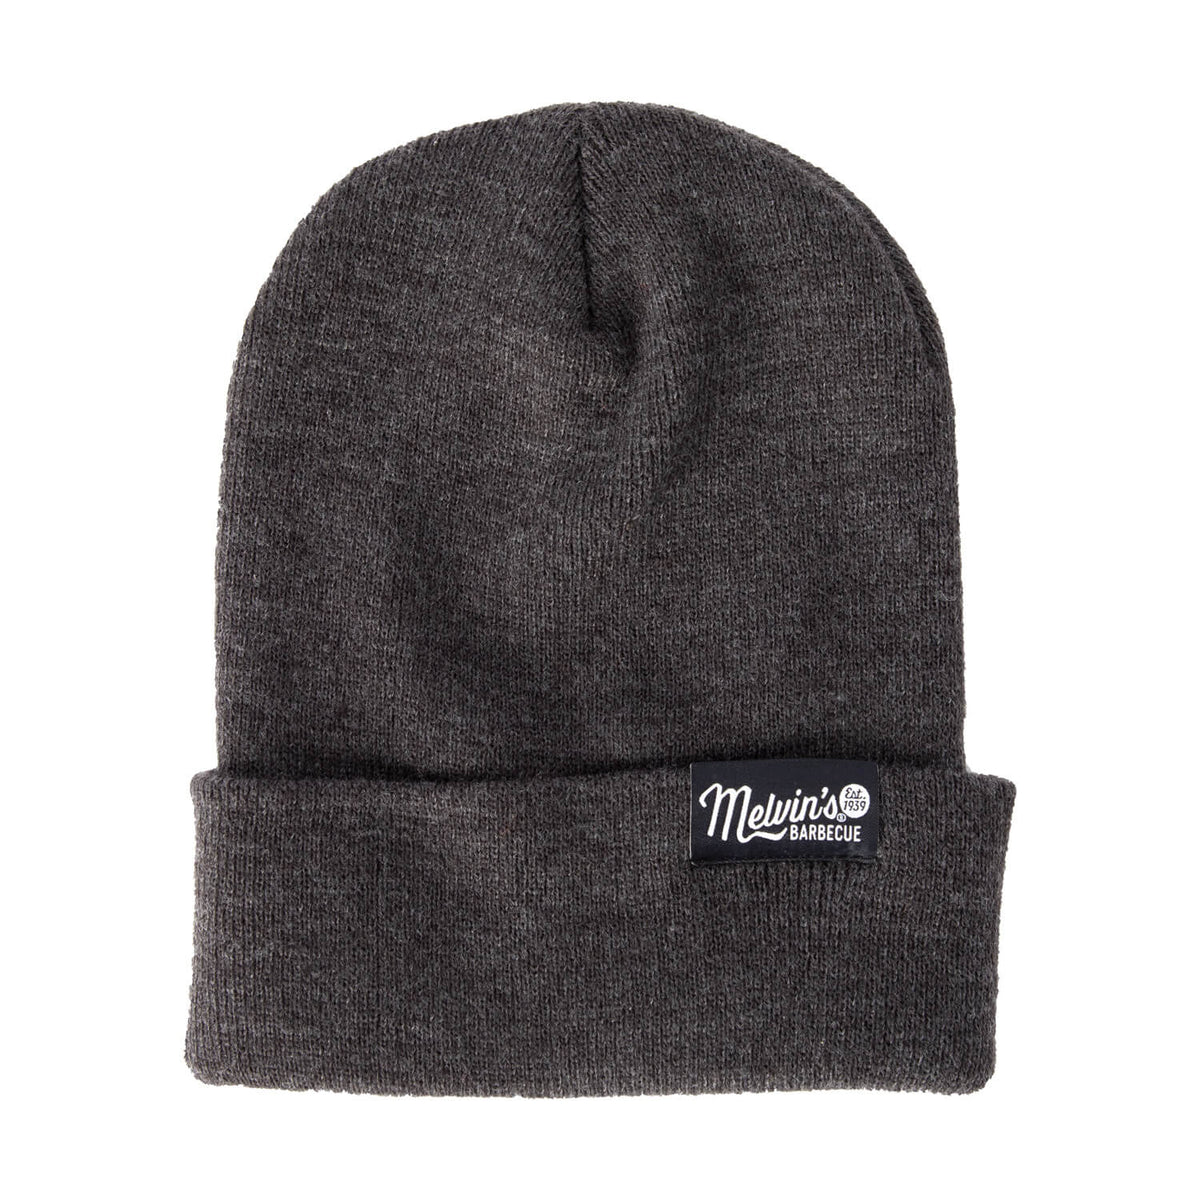 melvin's charcoal beanie